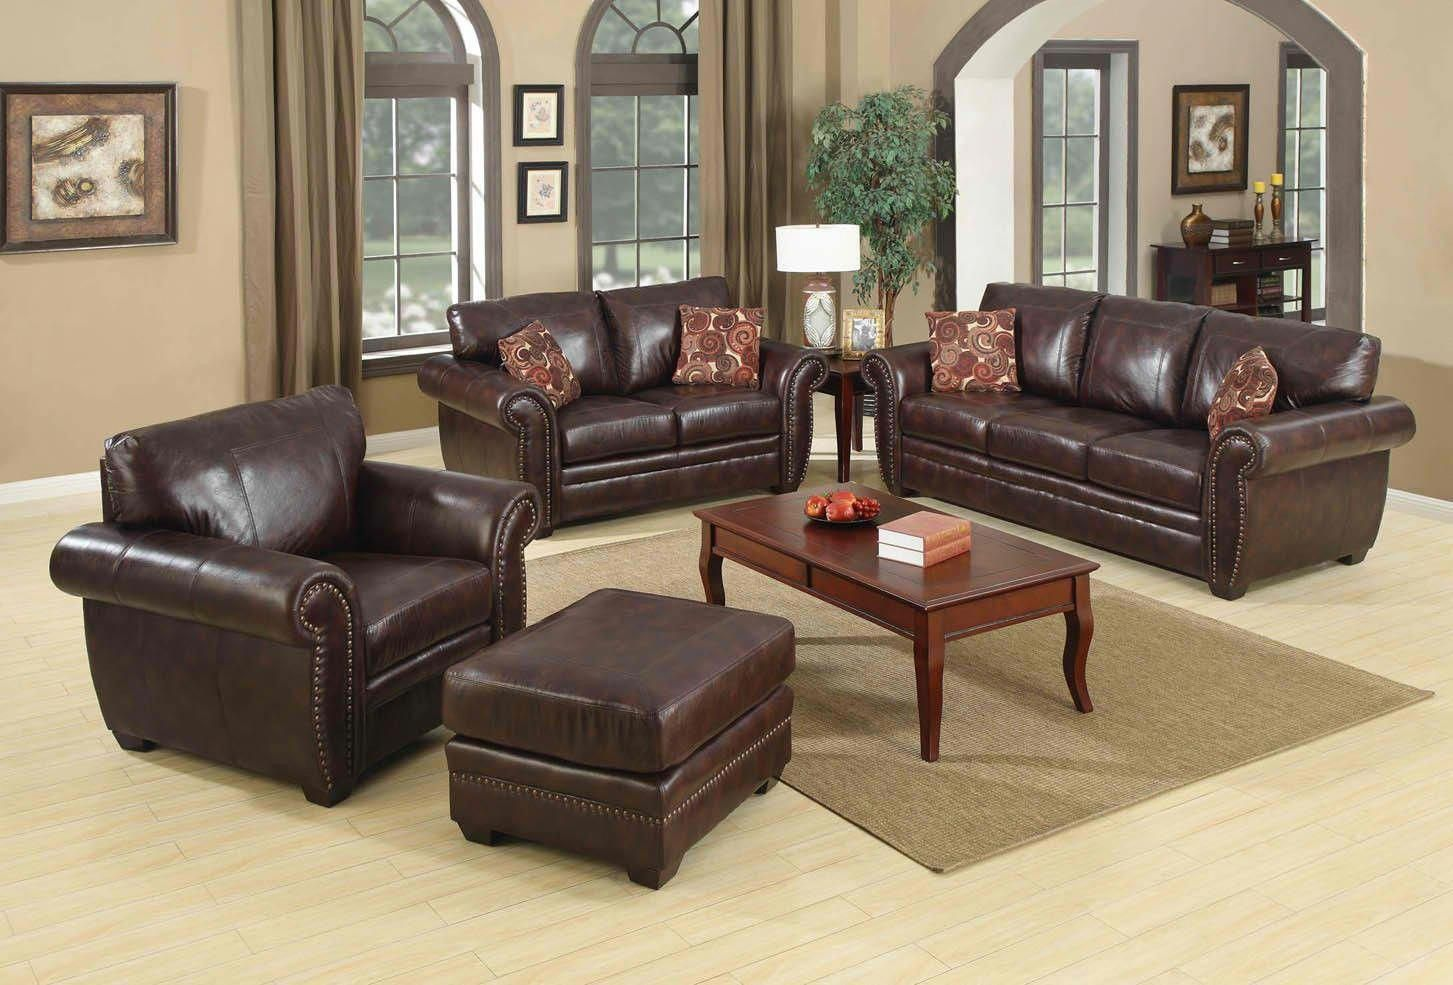 Contemporary Living Room Design With Black Leather Sofa Set And